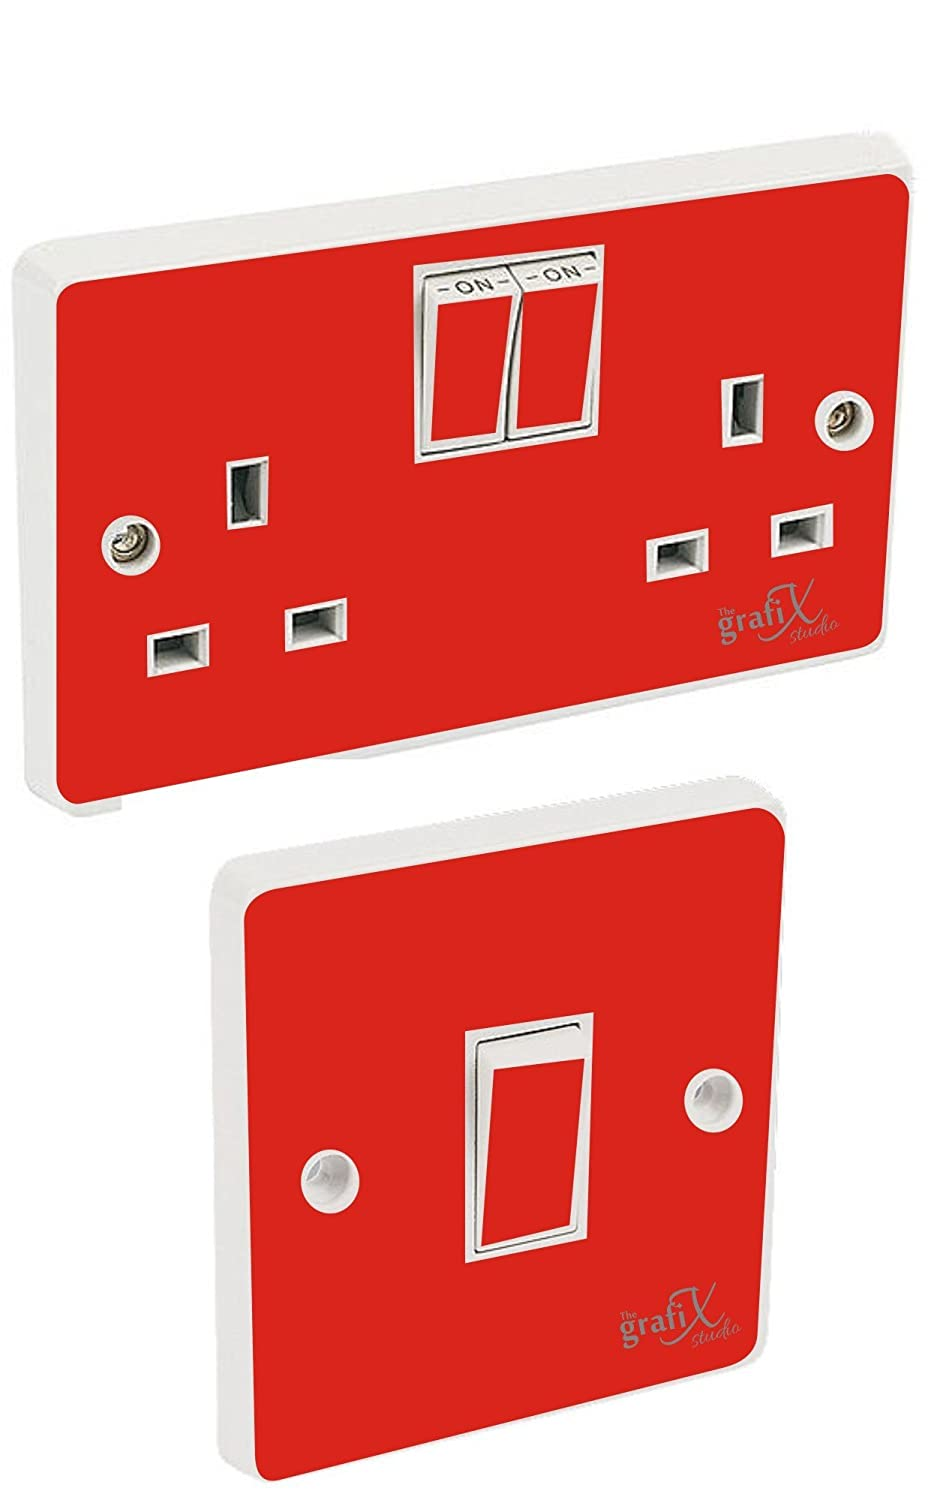 the grafix studio Red Gloss Light Switch & Double Socket Sticker Vinyl/Skin cover EXPSFD010907